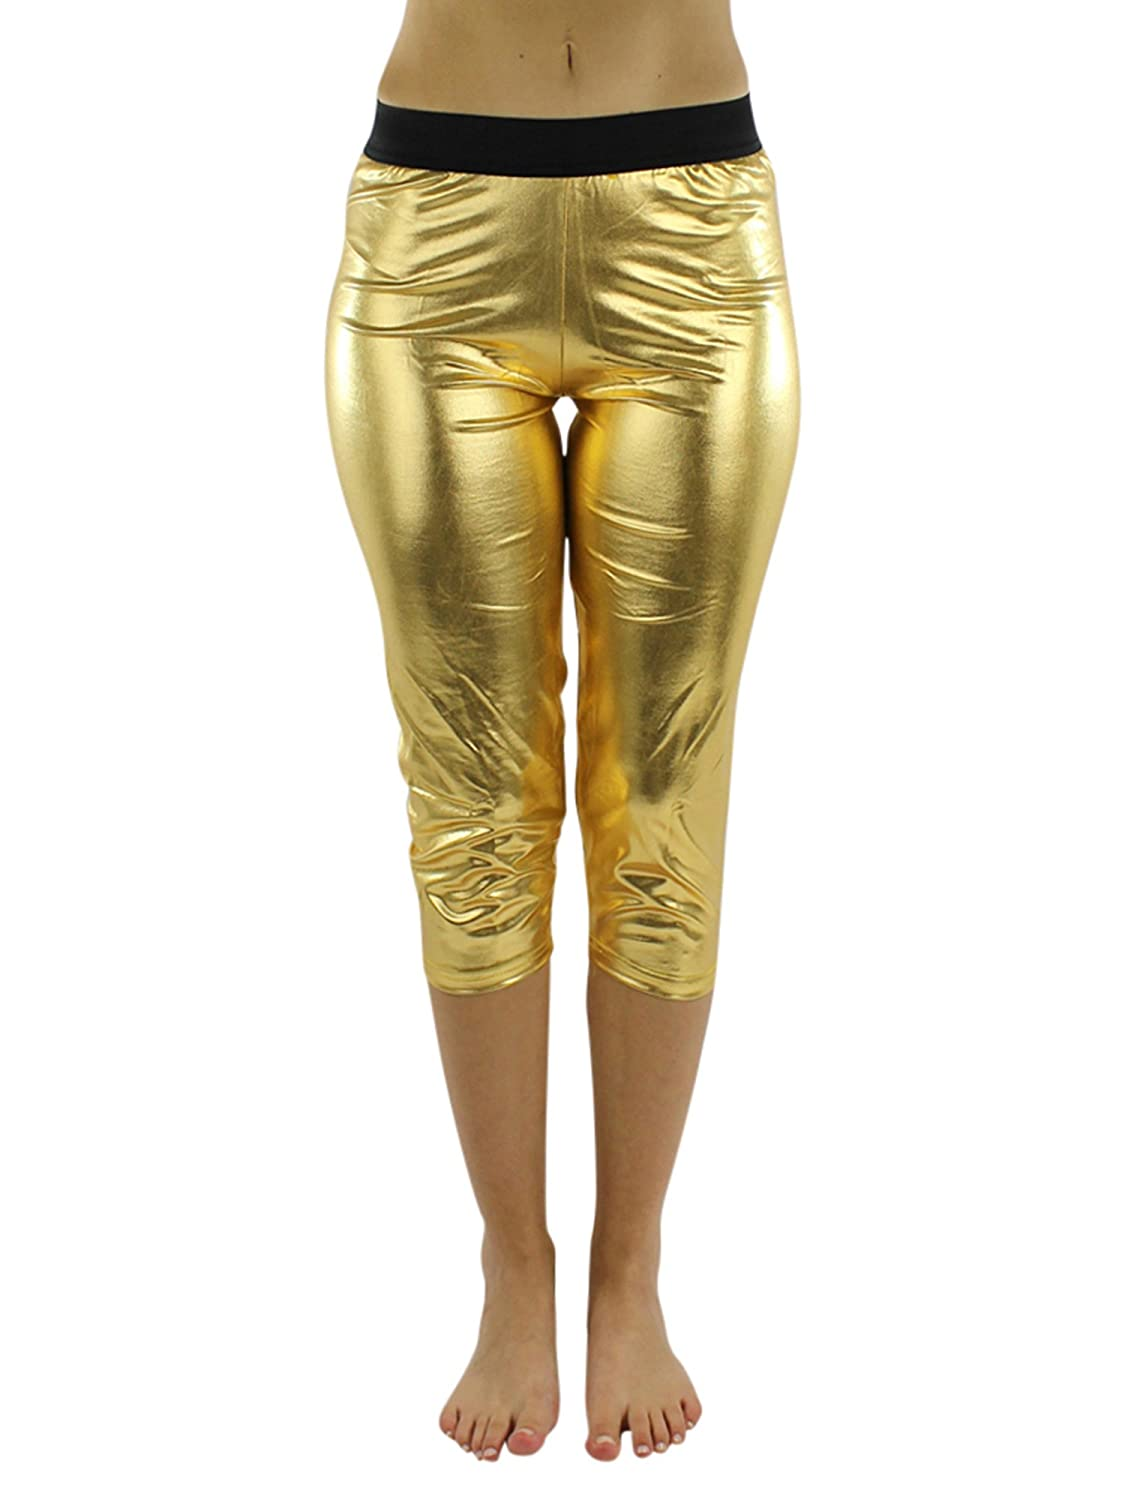 7c1fa4c5acccd Gold Metallic Foil Capri Style Stretchy Leggings at Amazon Women's Clothing  store: Tights